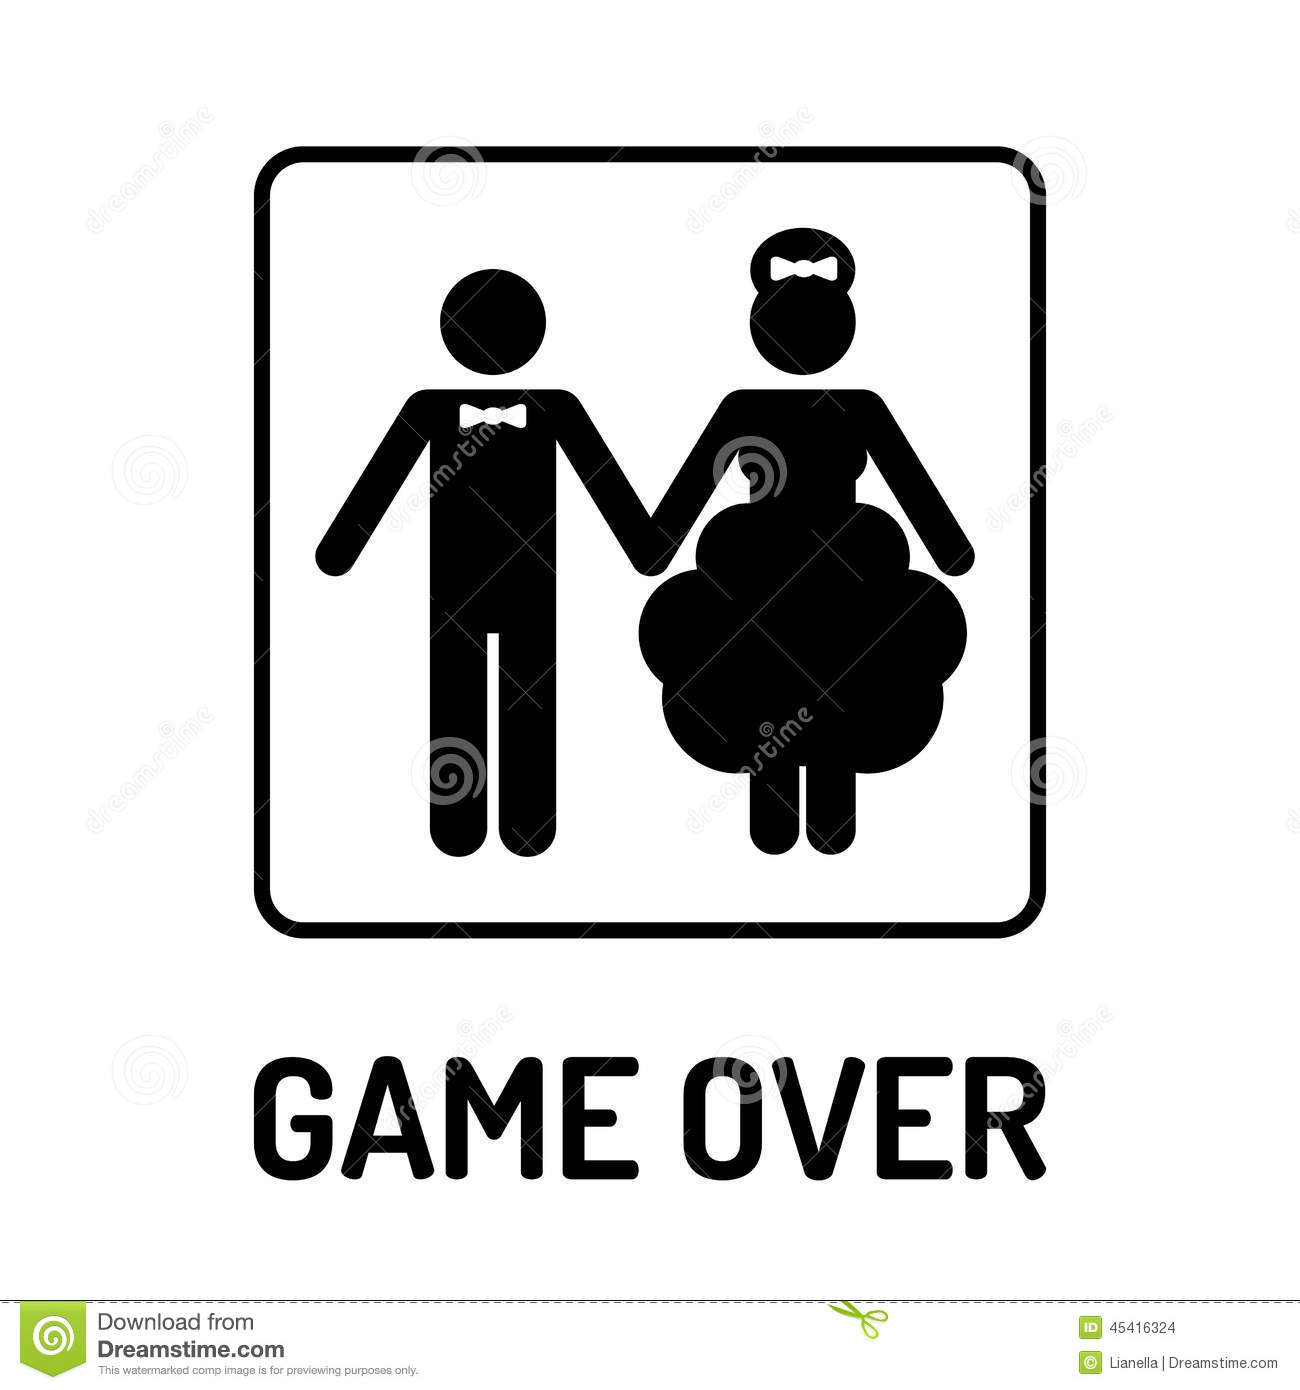 Married Couple Wallpaper With Quotes Cartoon Funny Wedding Symbol Game Over Stock Vector